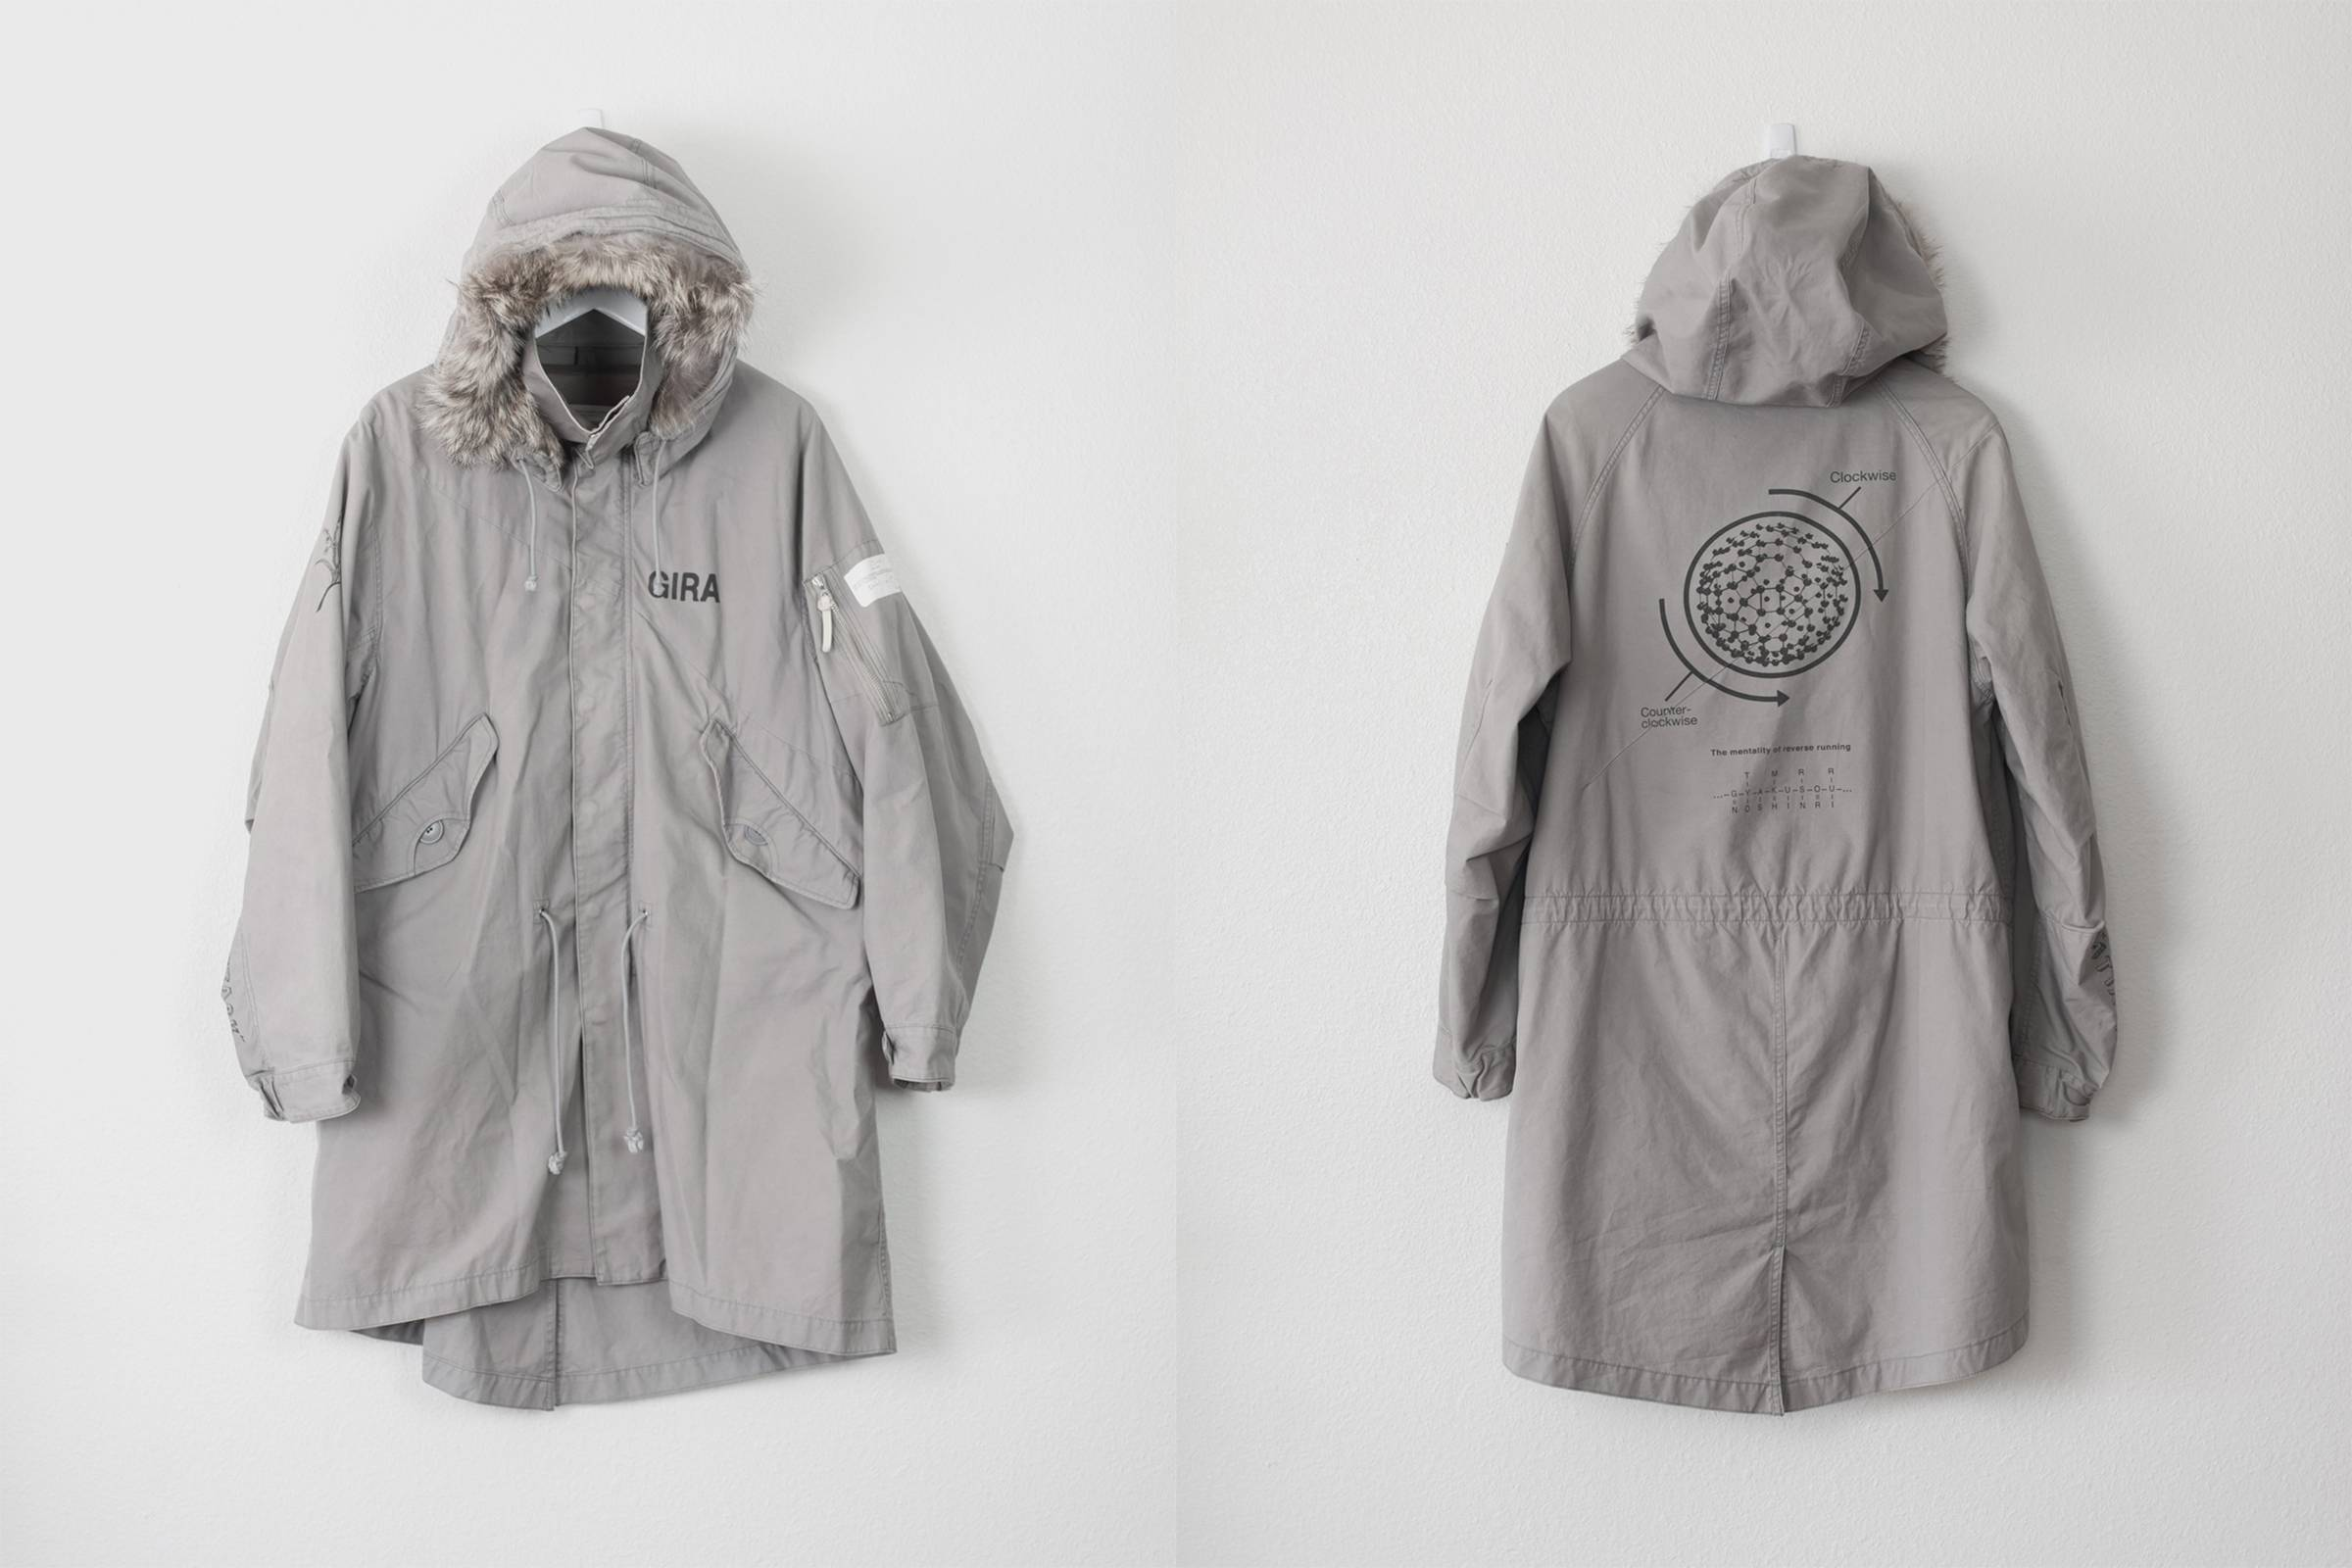 """Undercover """"G.I.R.A."""" Parka"""